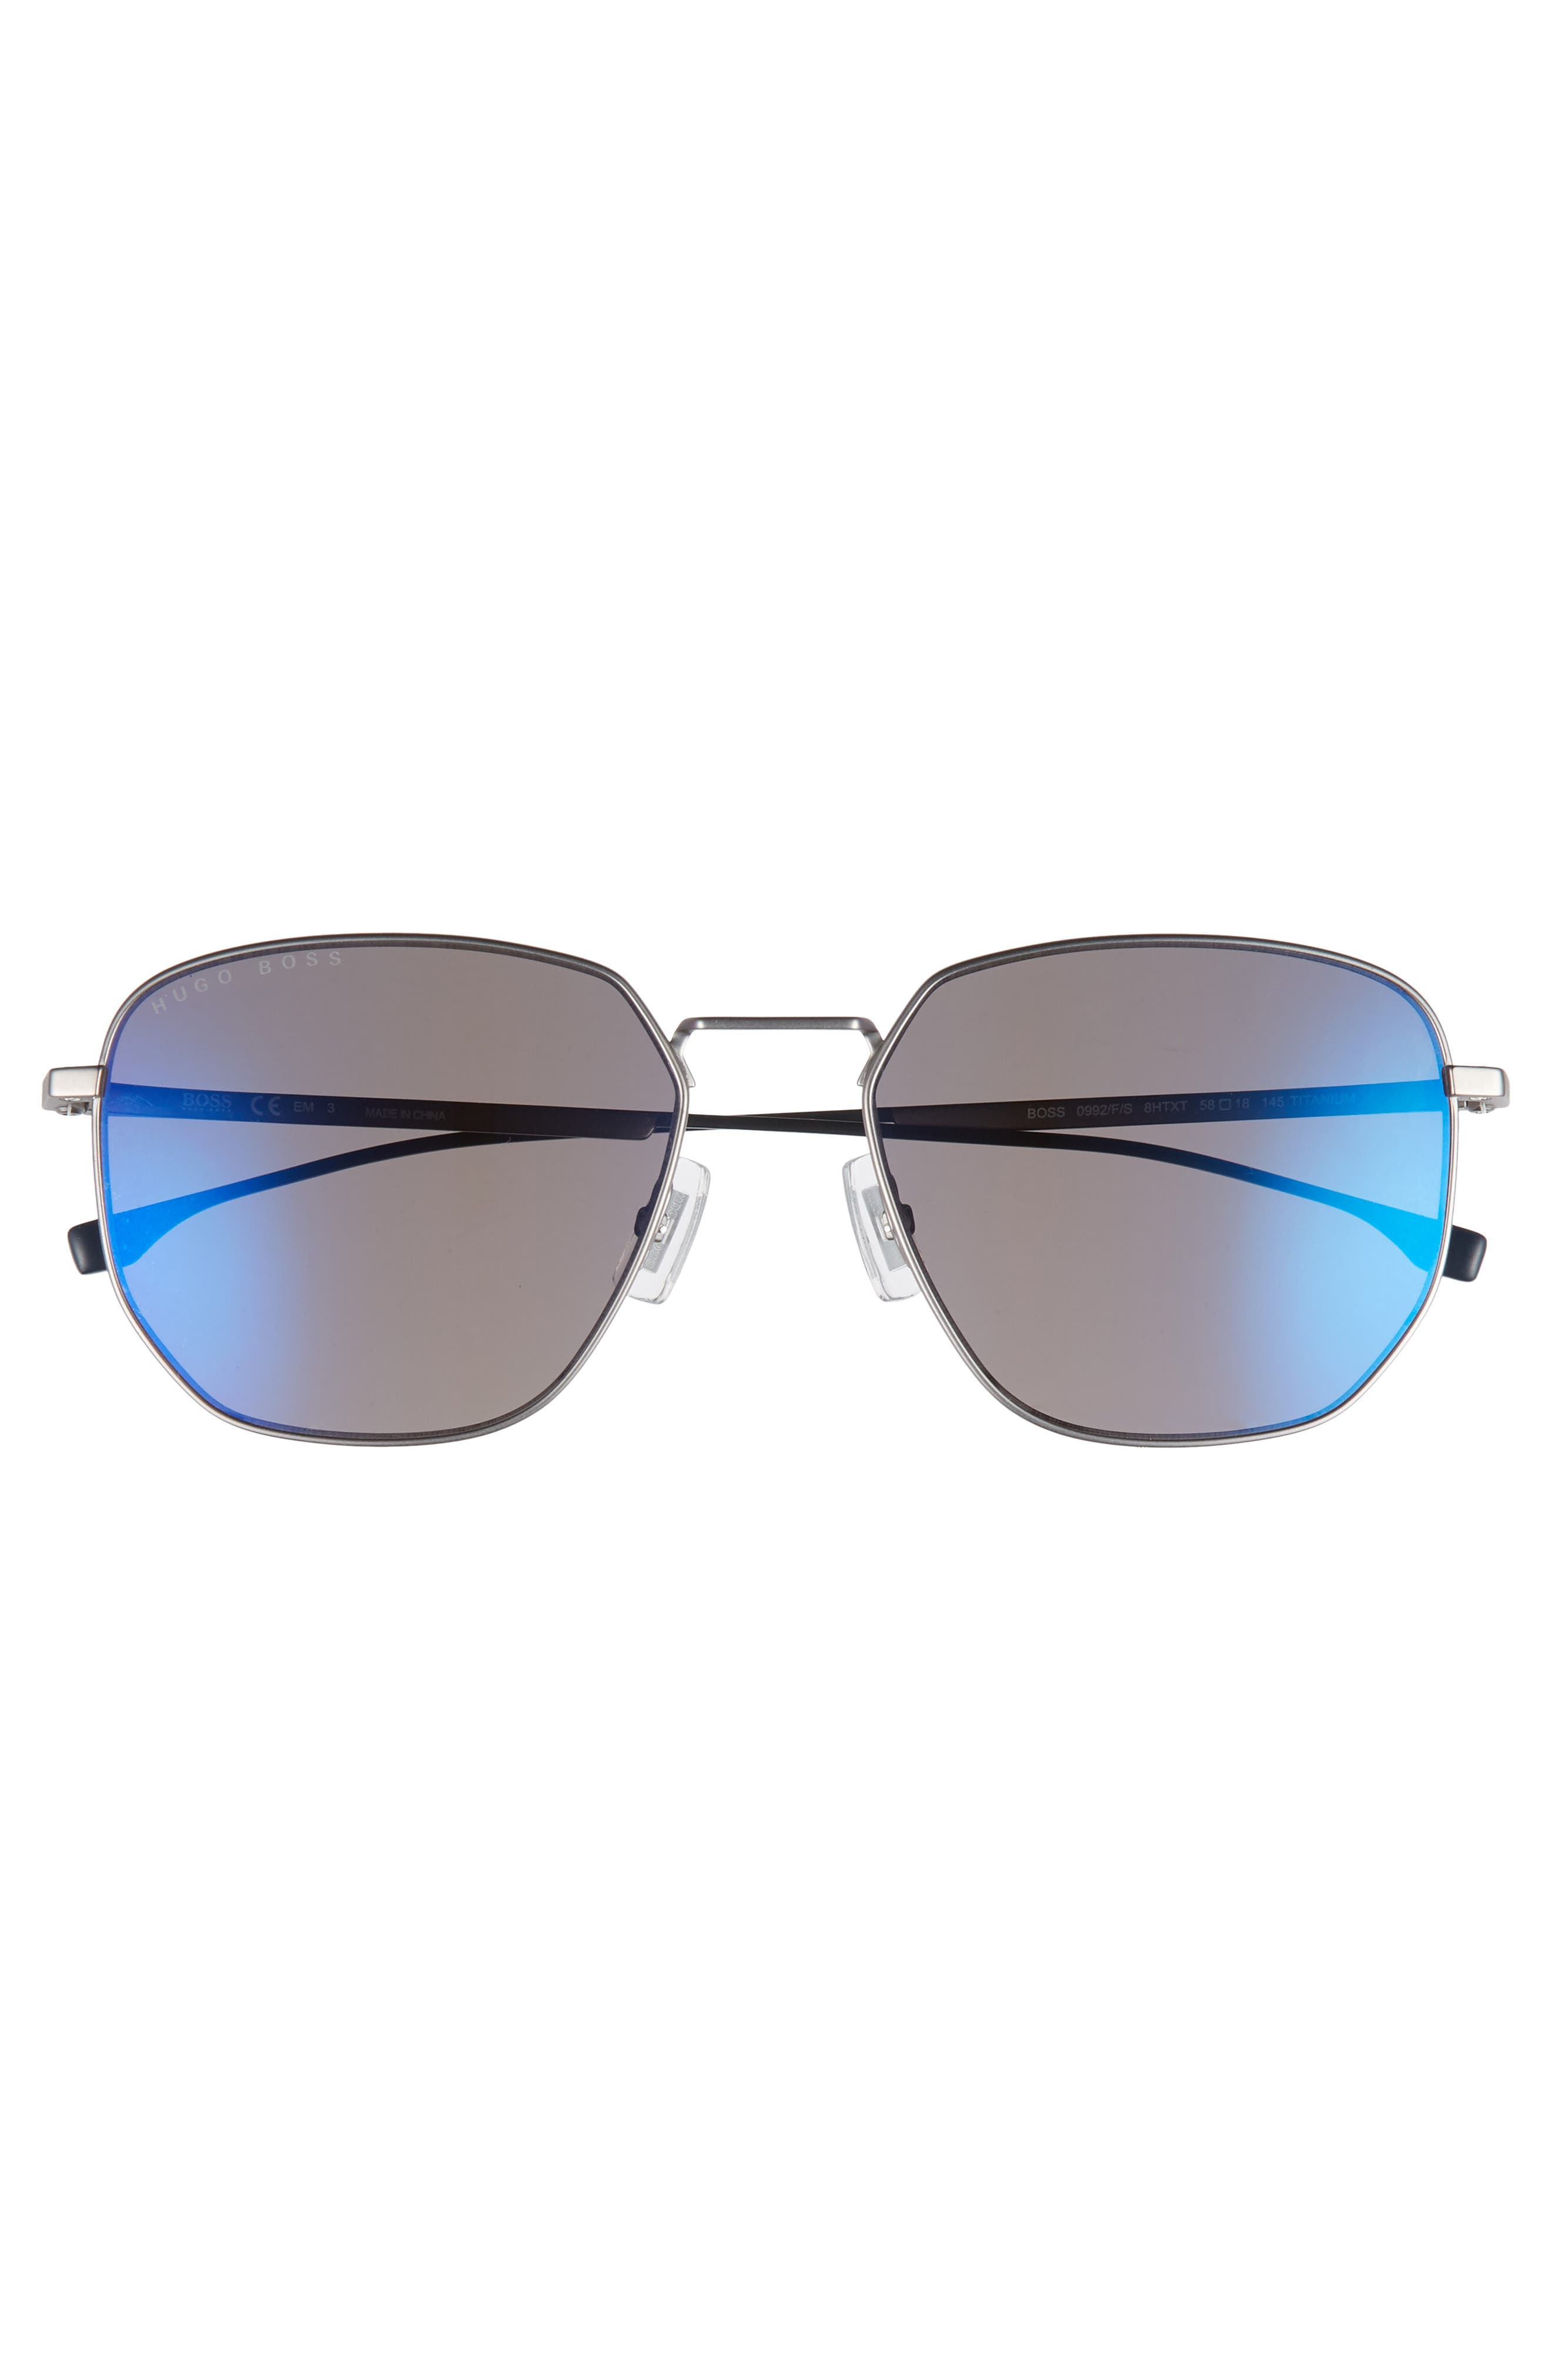 Special Fit 58mm Polarized Titanium Aviator Sunglasses,                             Alternate thumbnail 2, color,                             Grey/ Blue